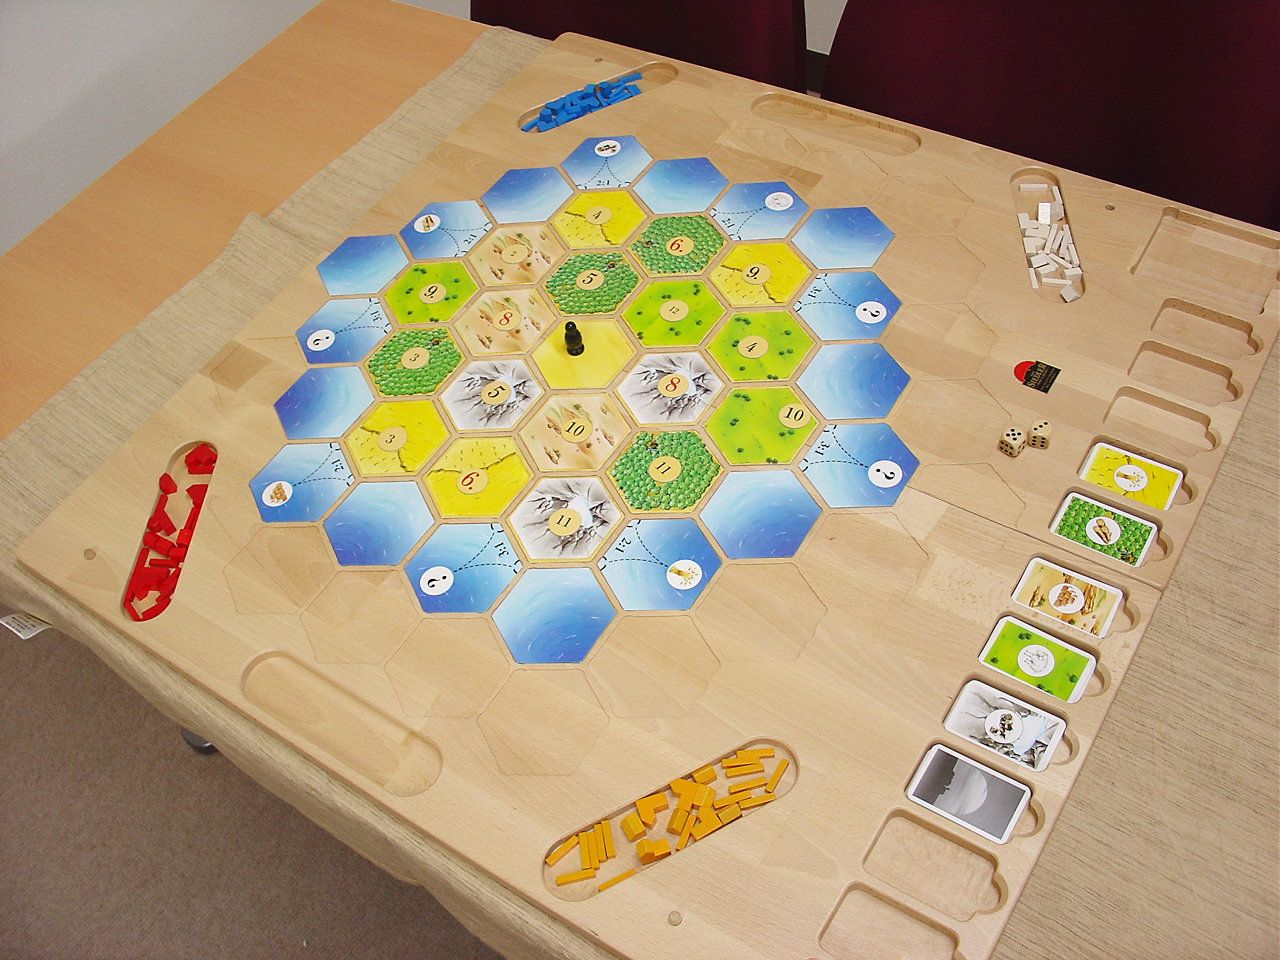 catan wood board Google Search Board games diy, Catan